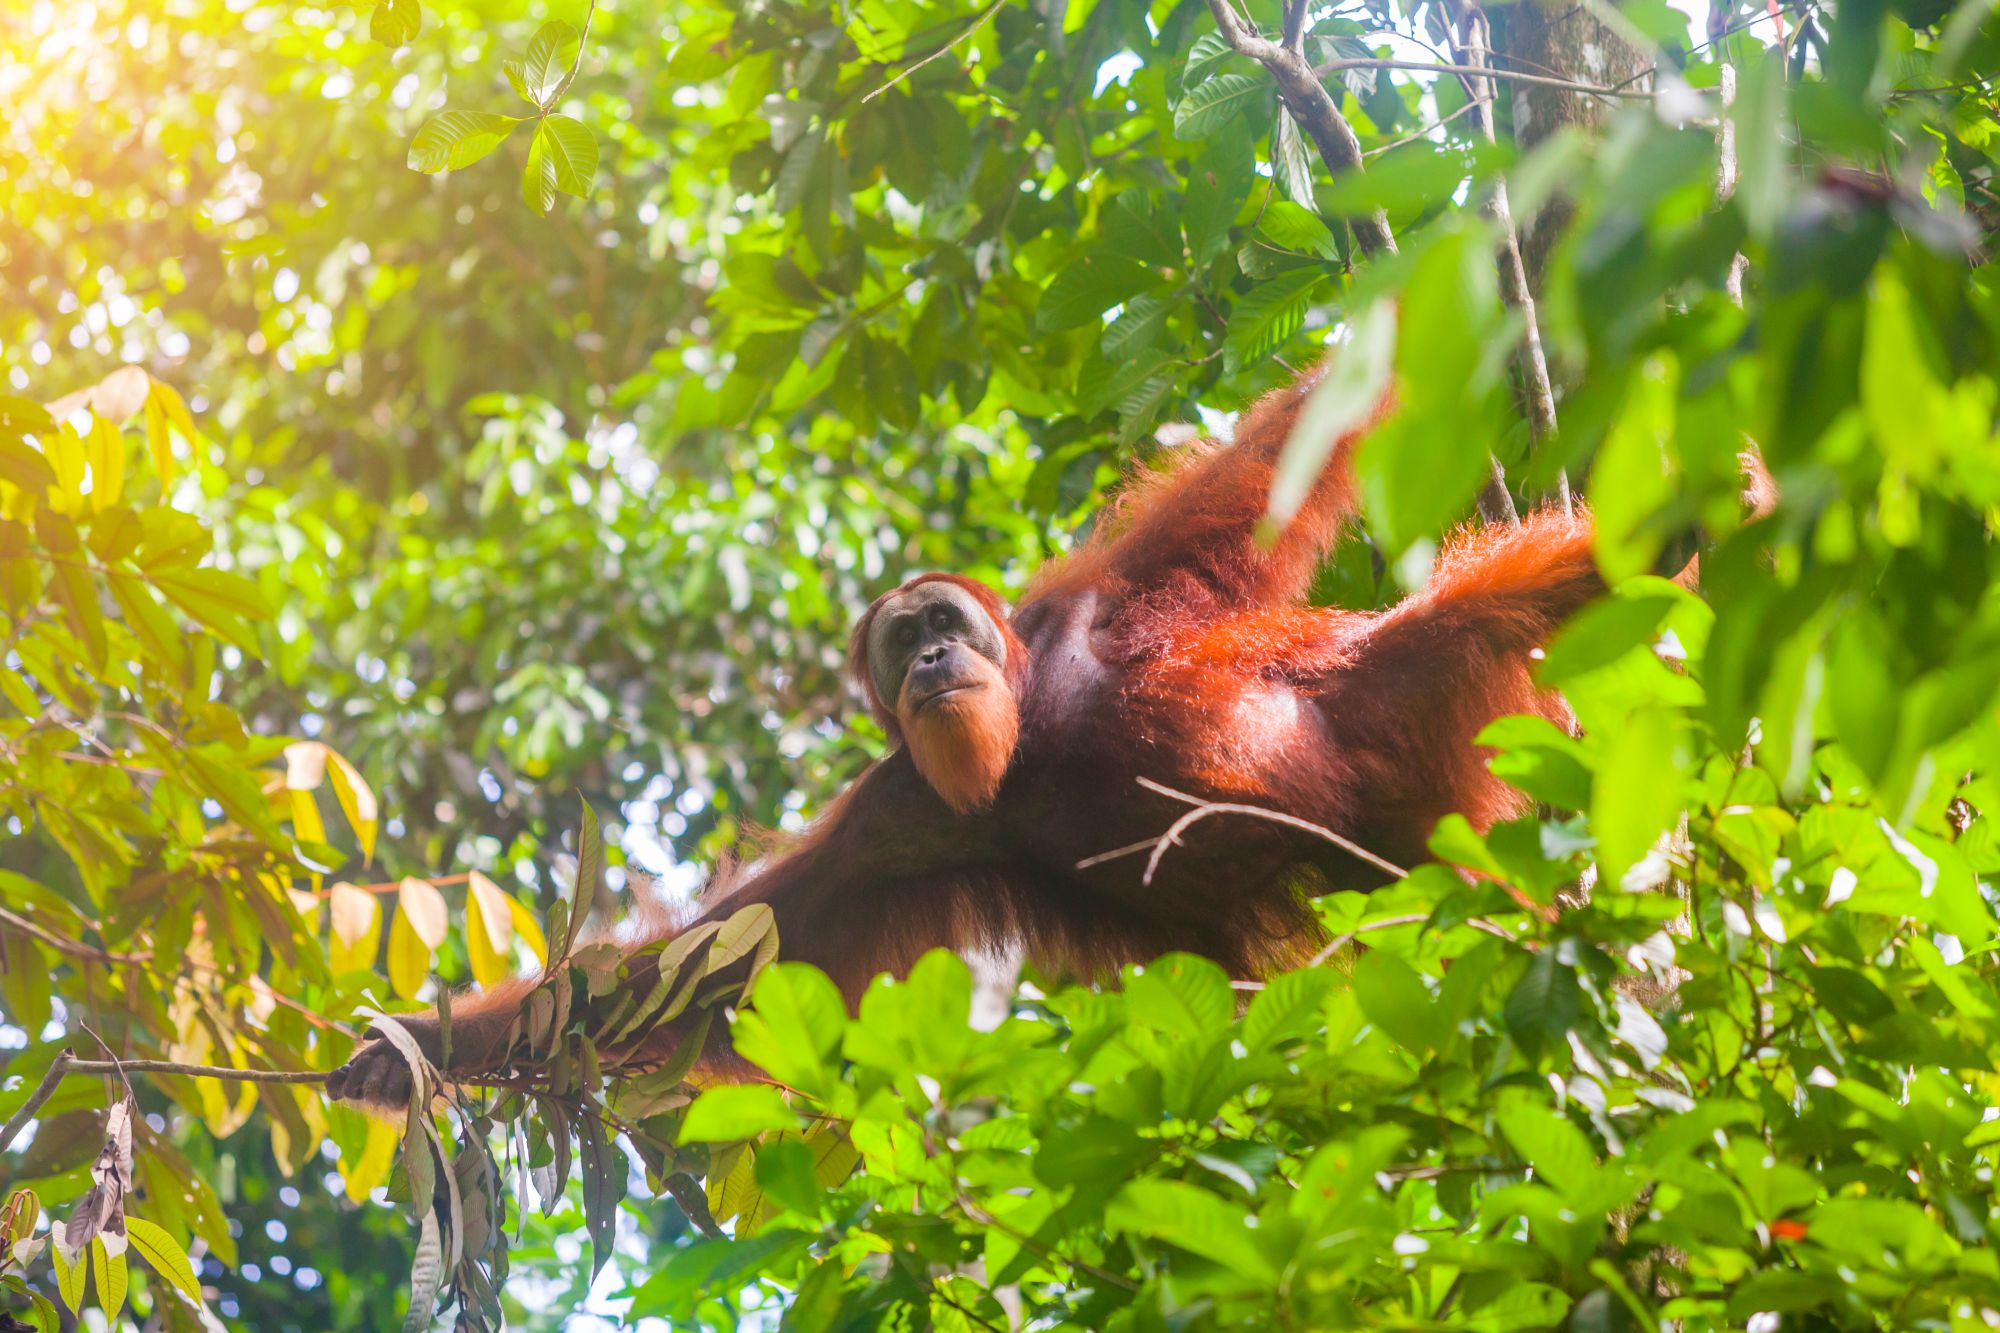 Indonesie Sumatran orang oetan in Gunung Leuser National Park